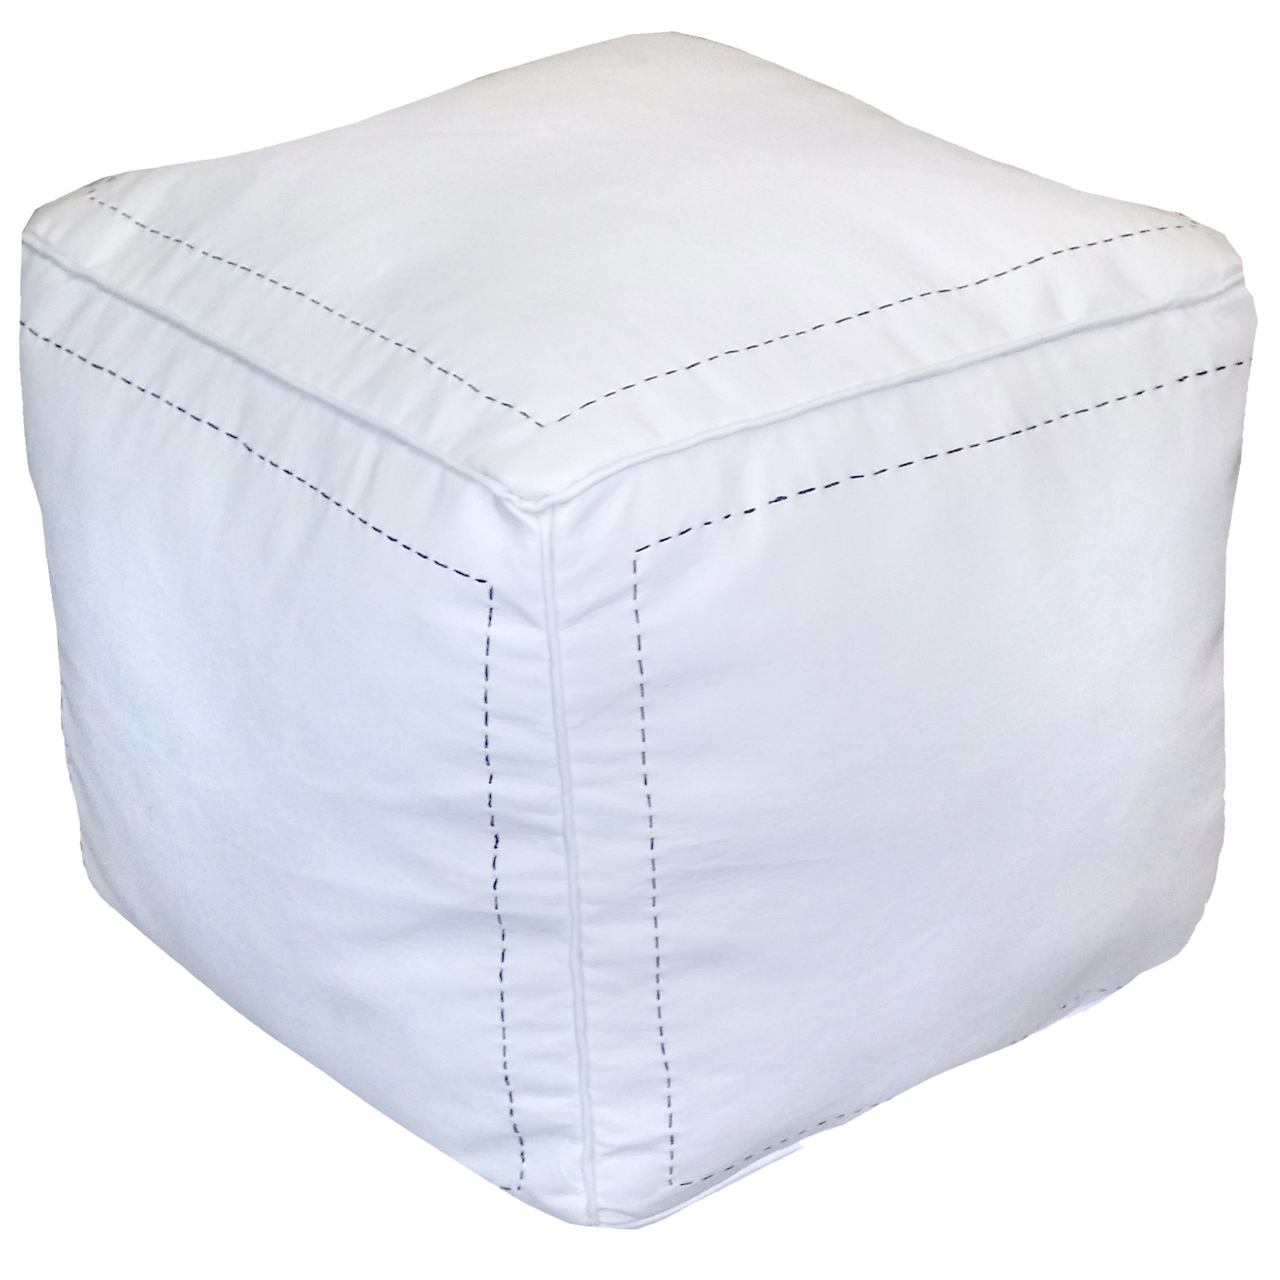 Miraculous Ikram Design Stuffed Square White Moroccan Leather Pouf 16 X 16 X 16 Walmart Com Gmtry Best Dining Table And Chair Ideas Images Gmtryco